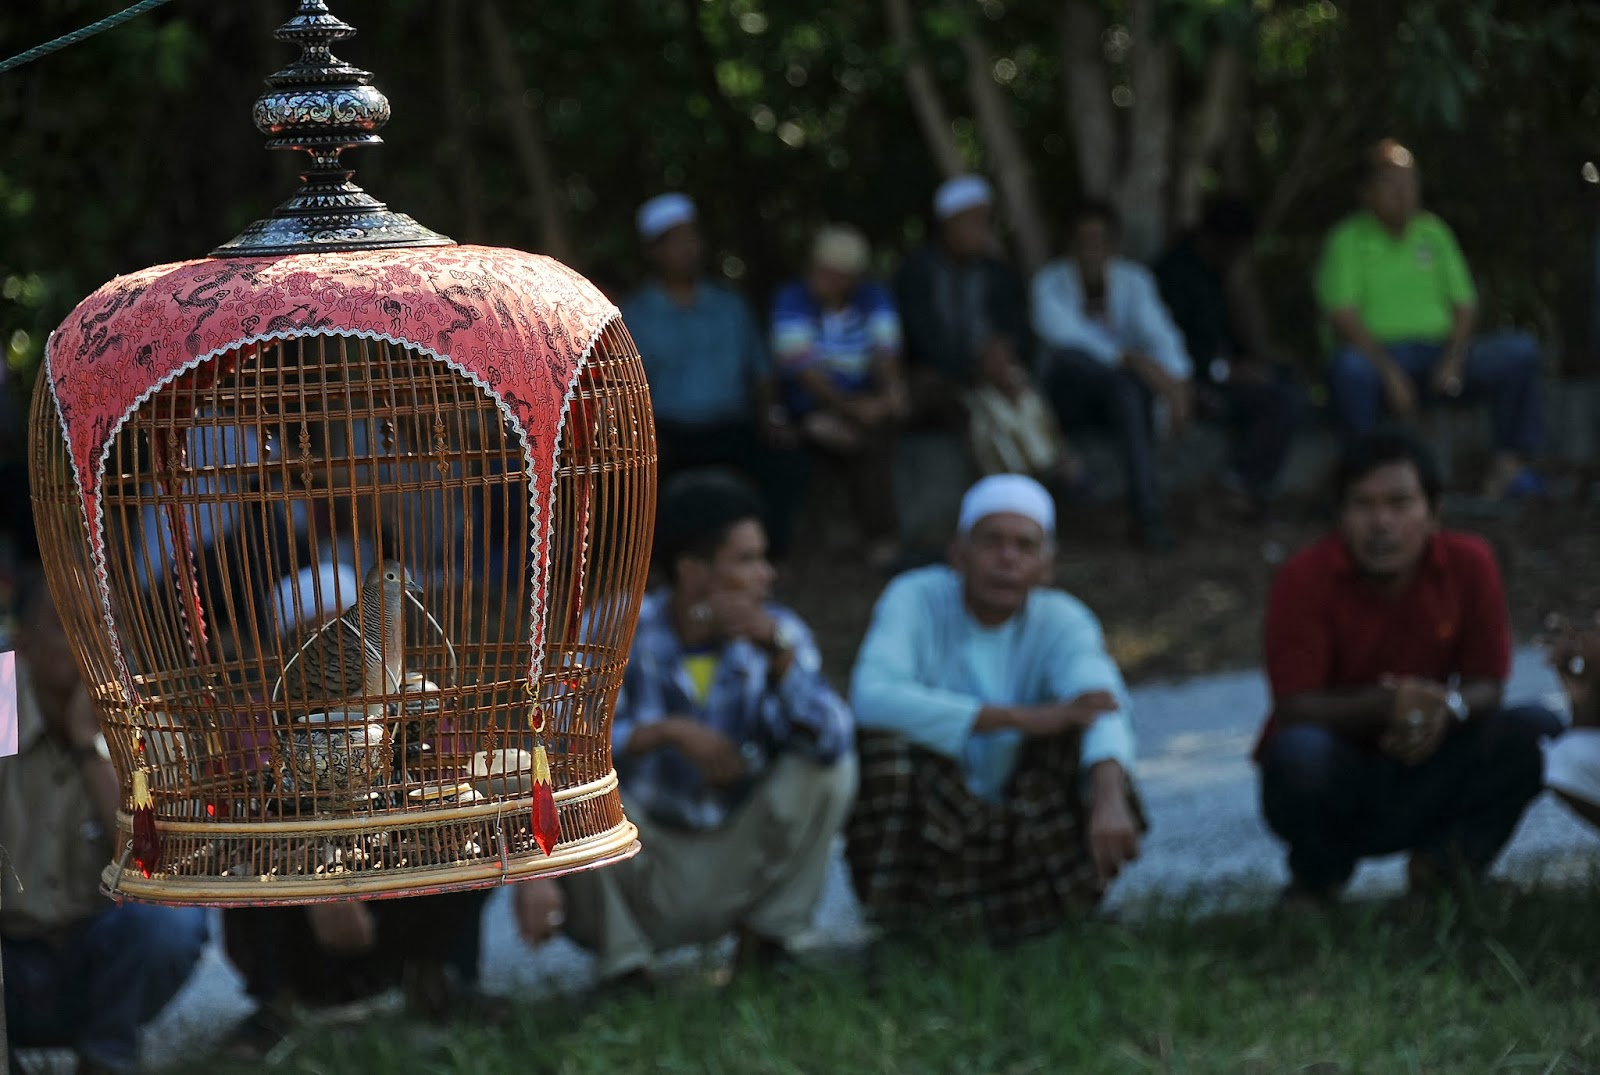 Animal, Bird, Bird-singing Contest, Competition, Contest, Malaysia, News, Offbeat, Participants, Singapore, Thailand,